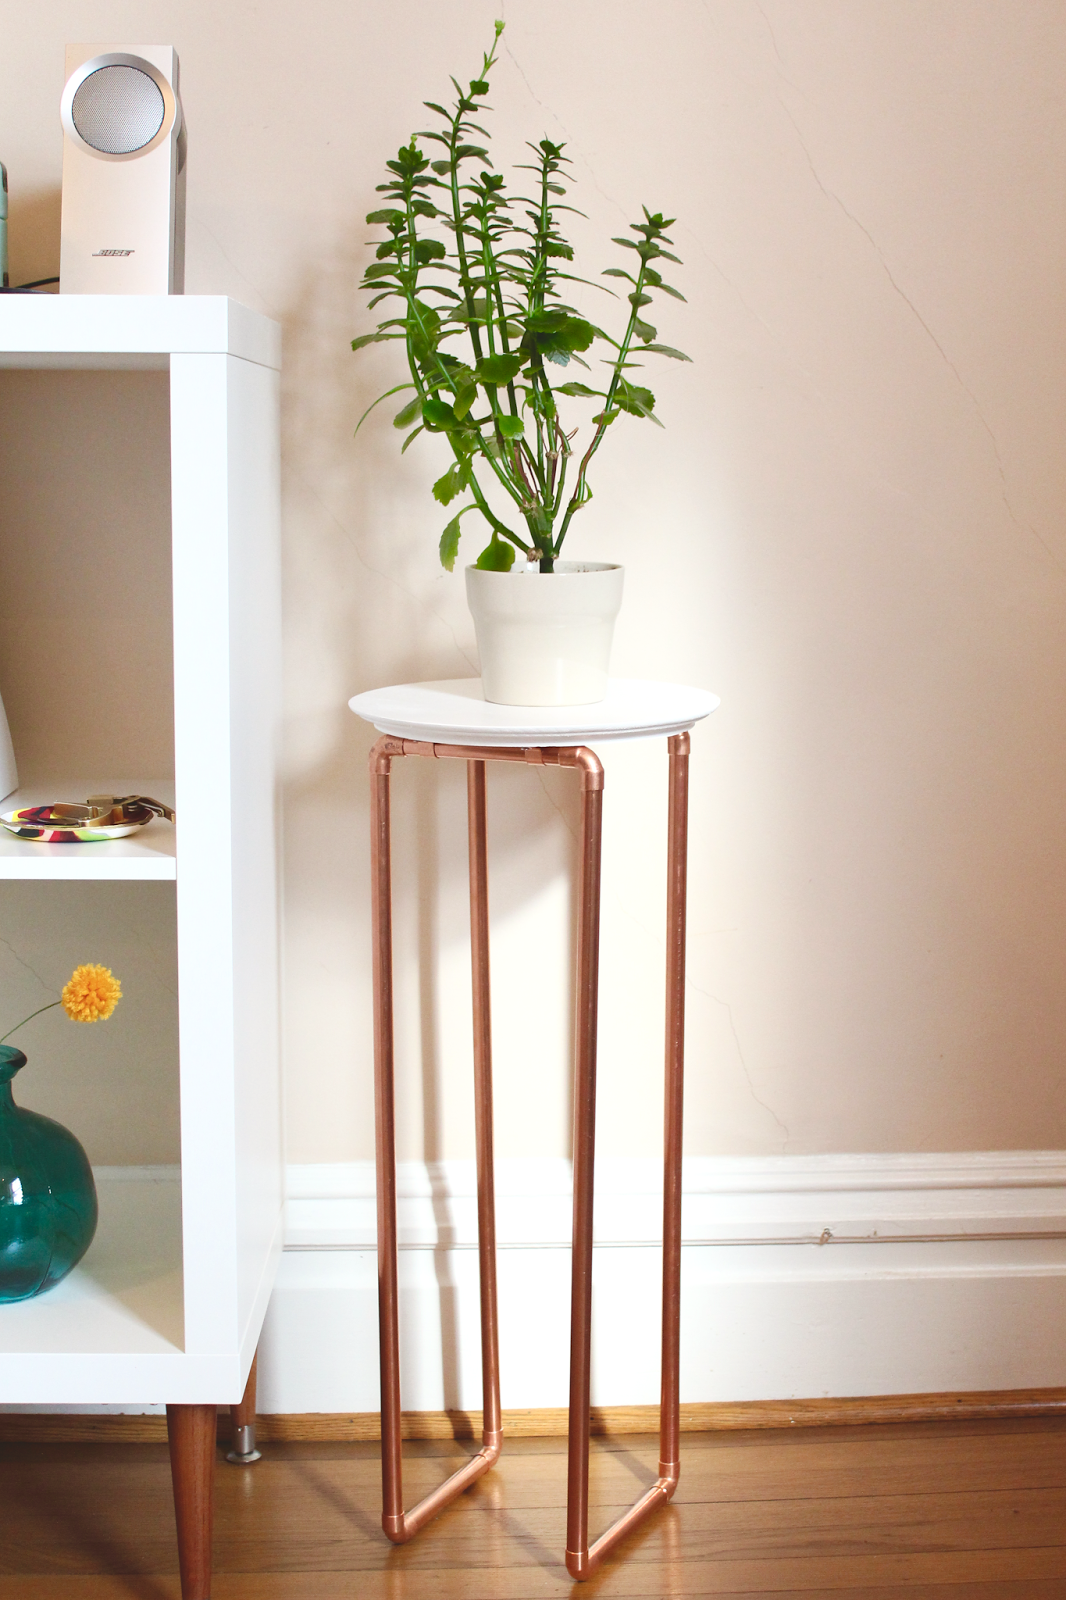 Copper Leg Plant Stand | Plants, Legs and DIY ideas